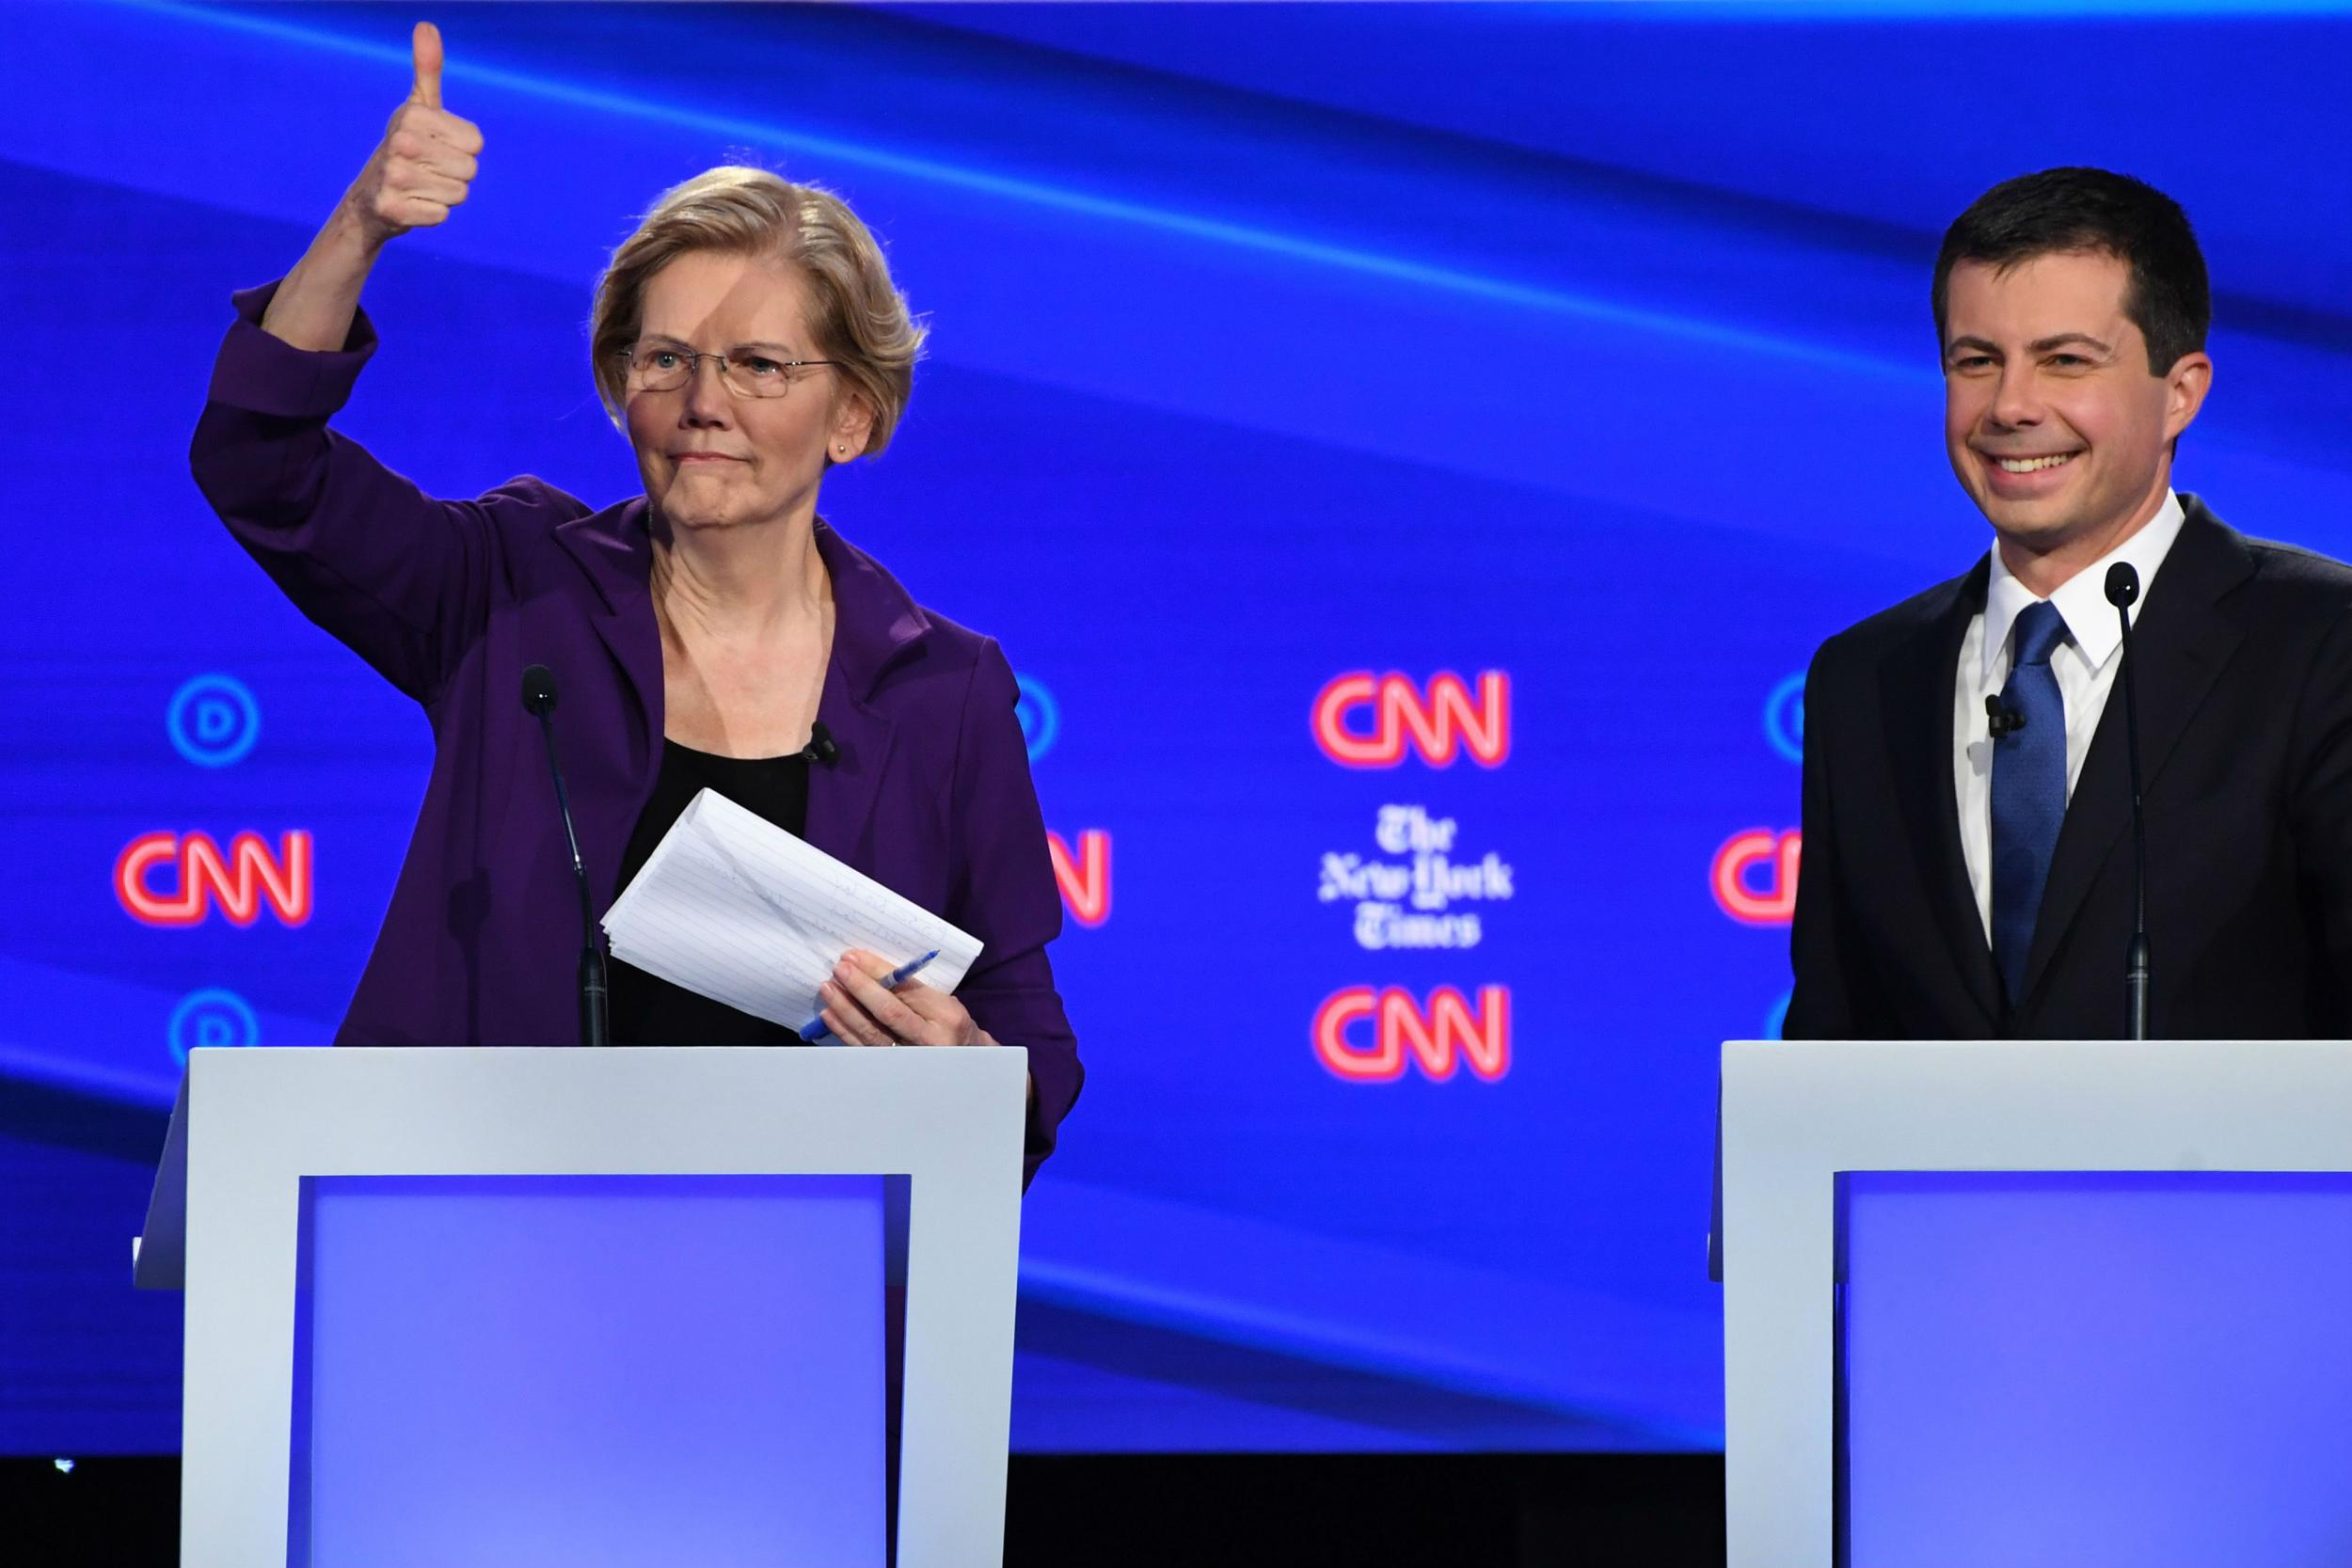 Pete Buttigieg won the Democratic debate by bringing a youthful bite back to moderate politics